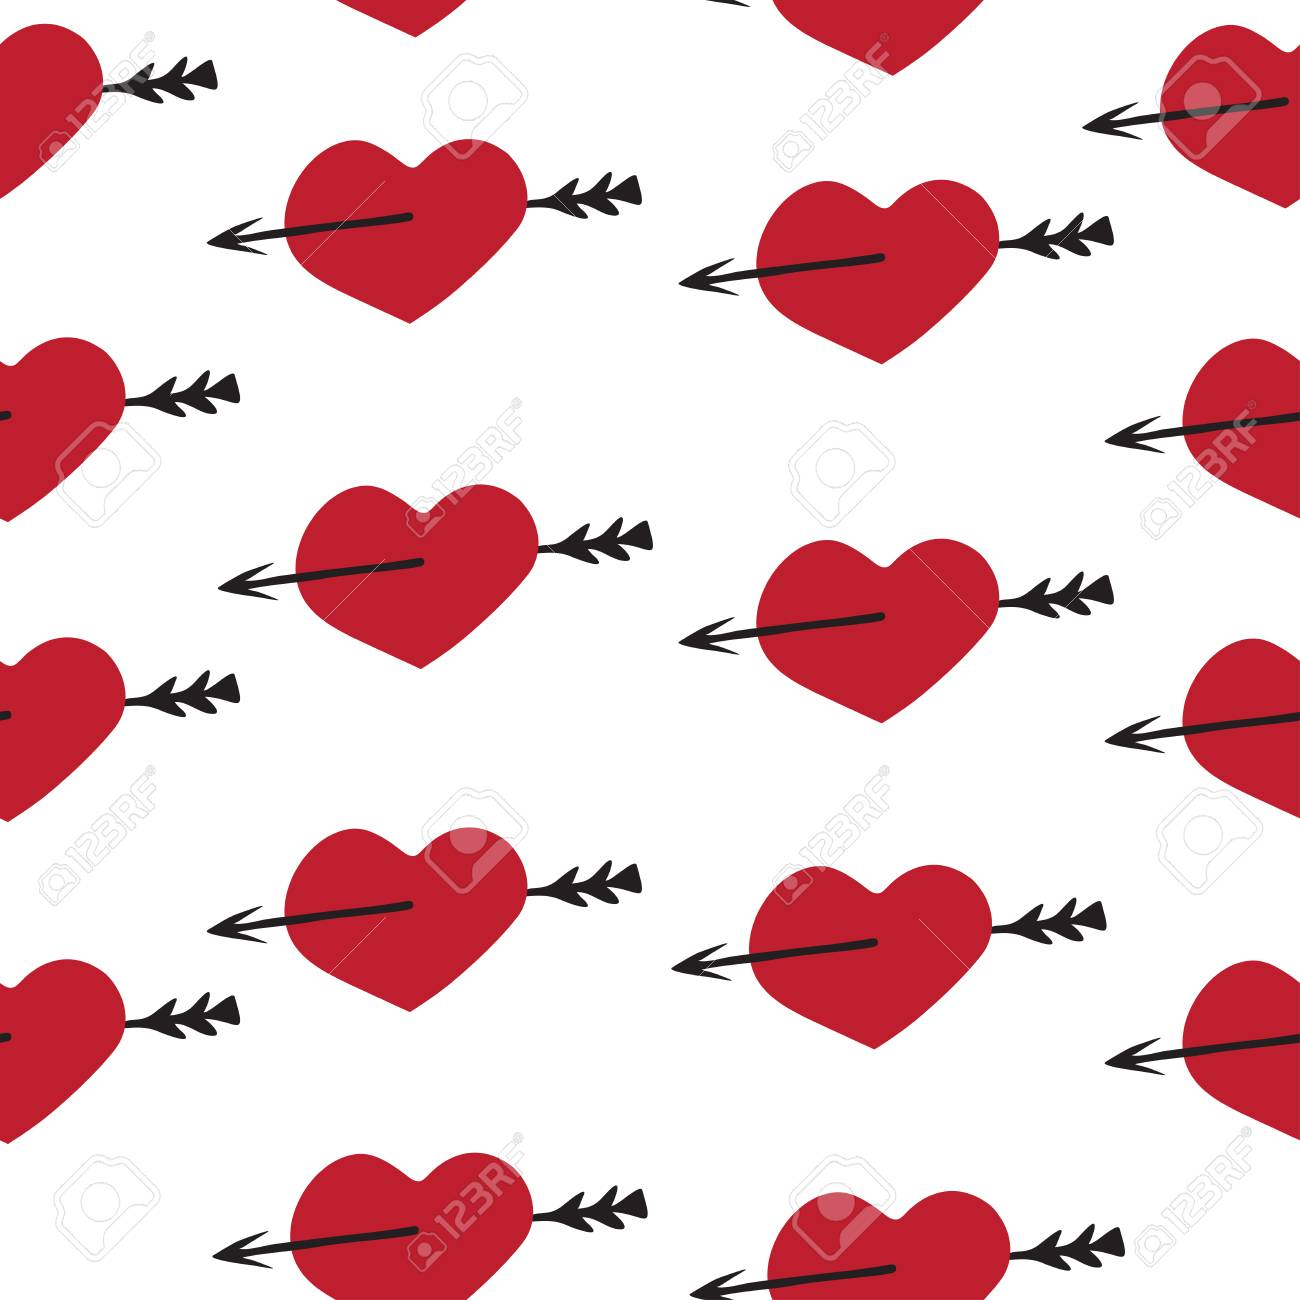 Love Seamless Pattern Romantic Elements Heart And Arrow For